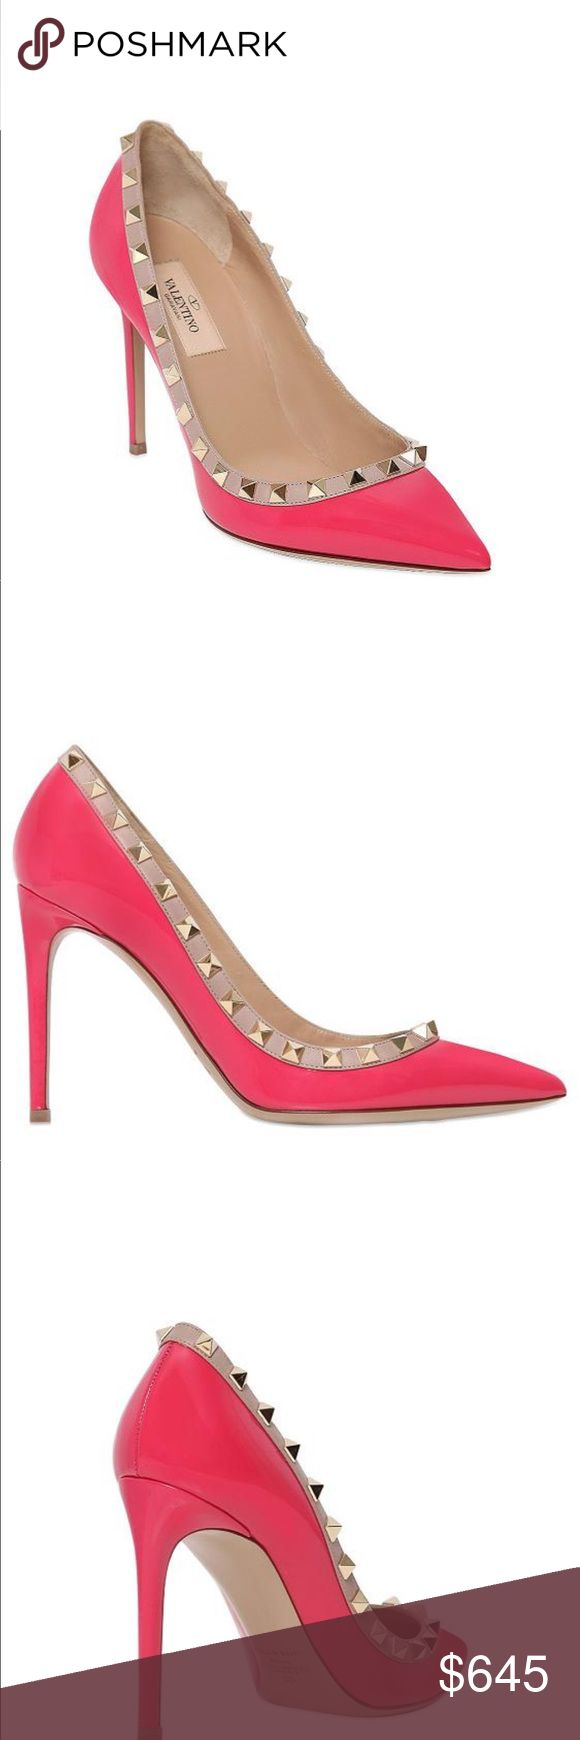 "⚡SALE⚡NEW ROCKSTUD VALENTINO PUMPS Valentino Garavani leather pump with napa trim. 4"" covered heel. Size 39 in like a fuscia color. Color will vary due to lighting.  Pointed toe. Signature Rockstuds around collar. Low-cut vamp. Slip-on style. Smooth outsole. Leather lining and insole. Made in Italy. Valentino Shoes Heels"